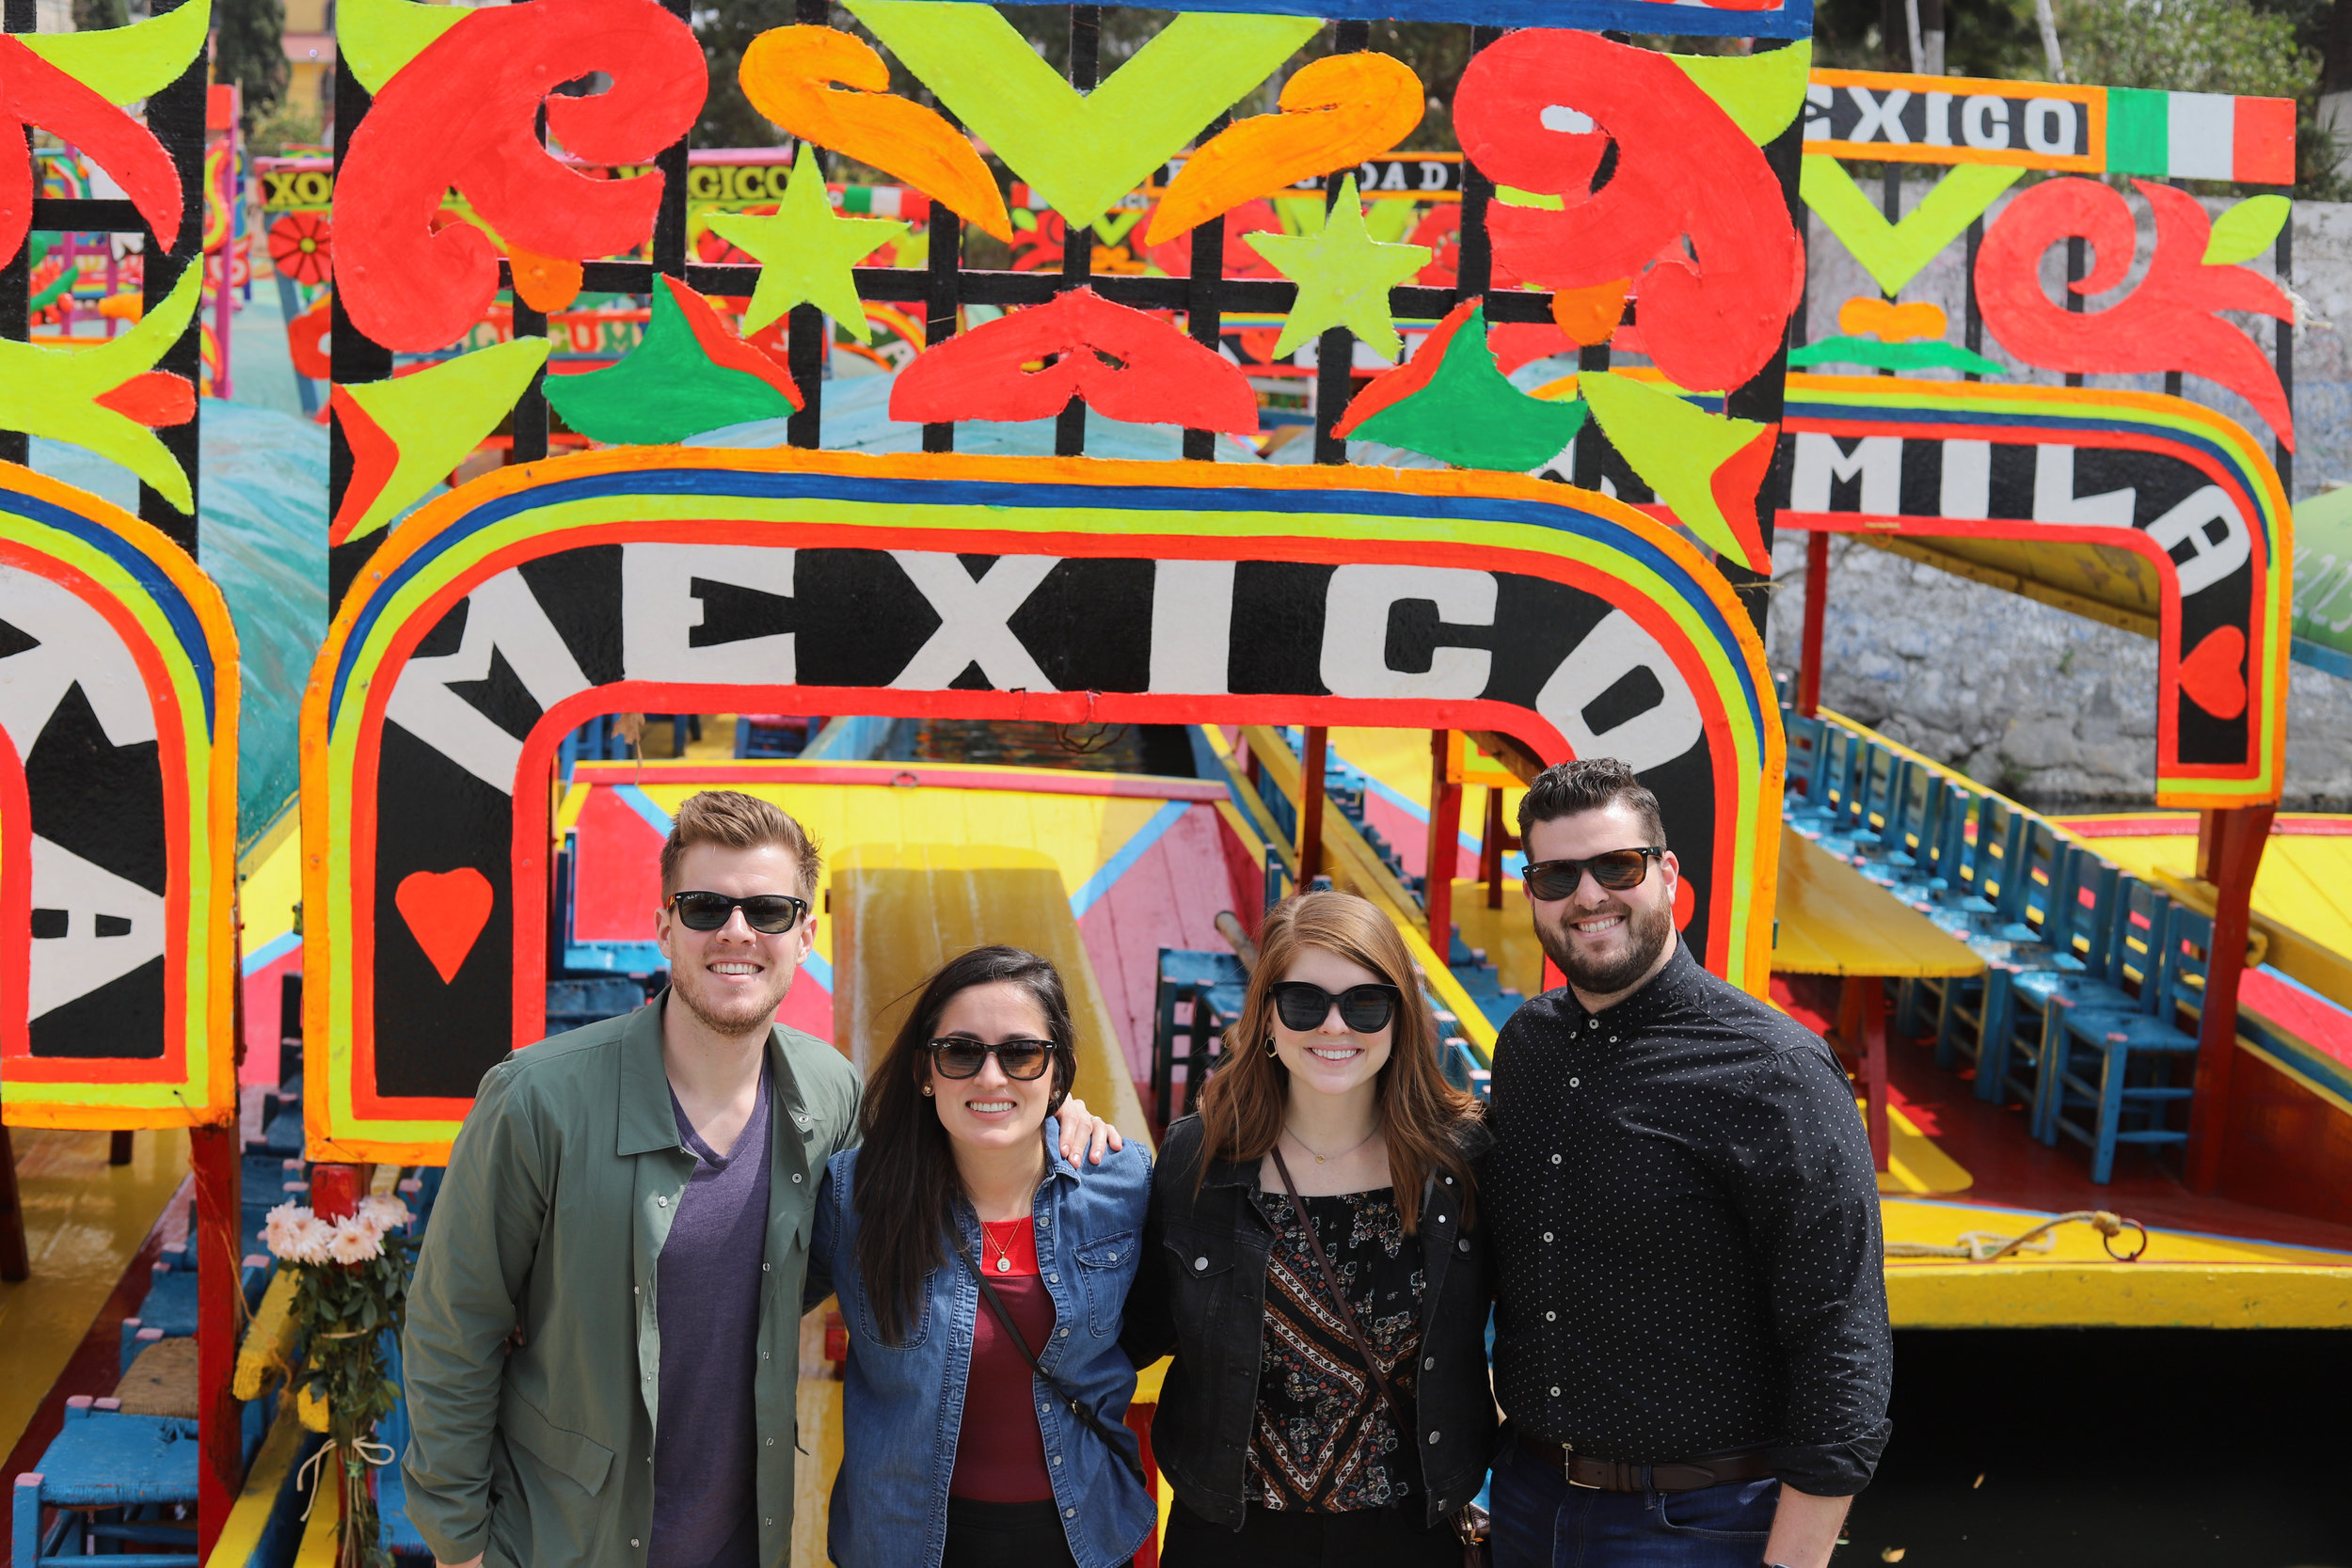 mexico city travel guide, what to do in mexico city, where to eat in mexico city, where to stay in mexico city, la ciudad de mexico, cdmx, cute neighborhoods near mexico city, xochimilco